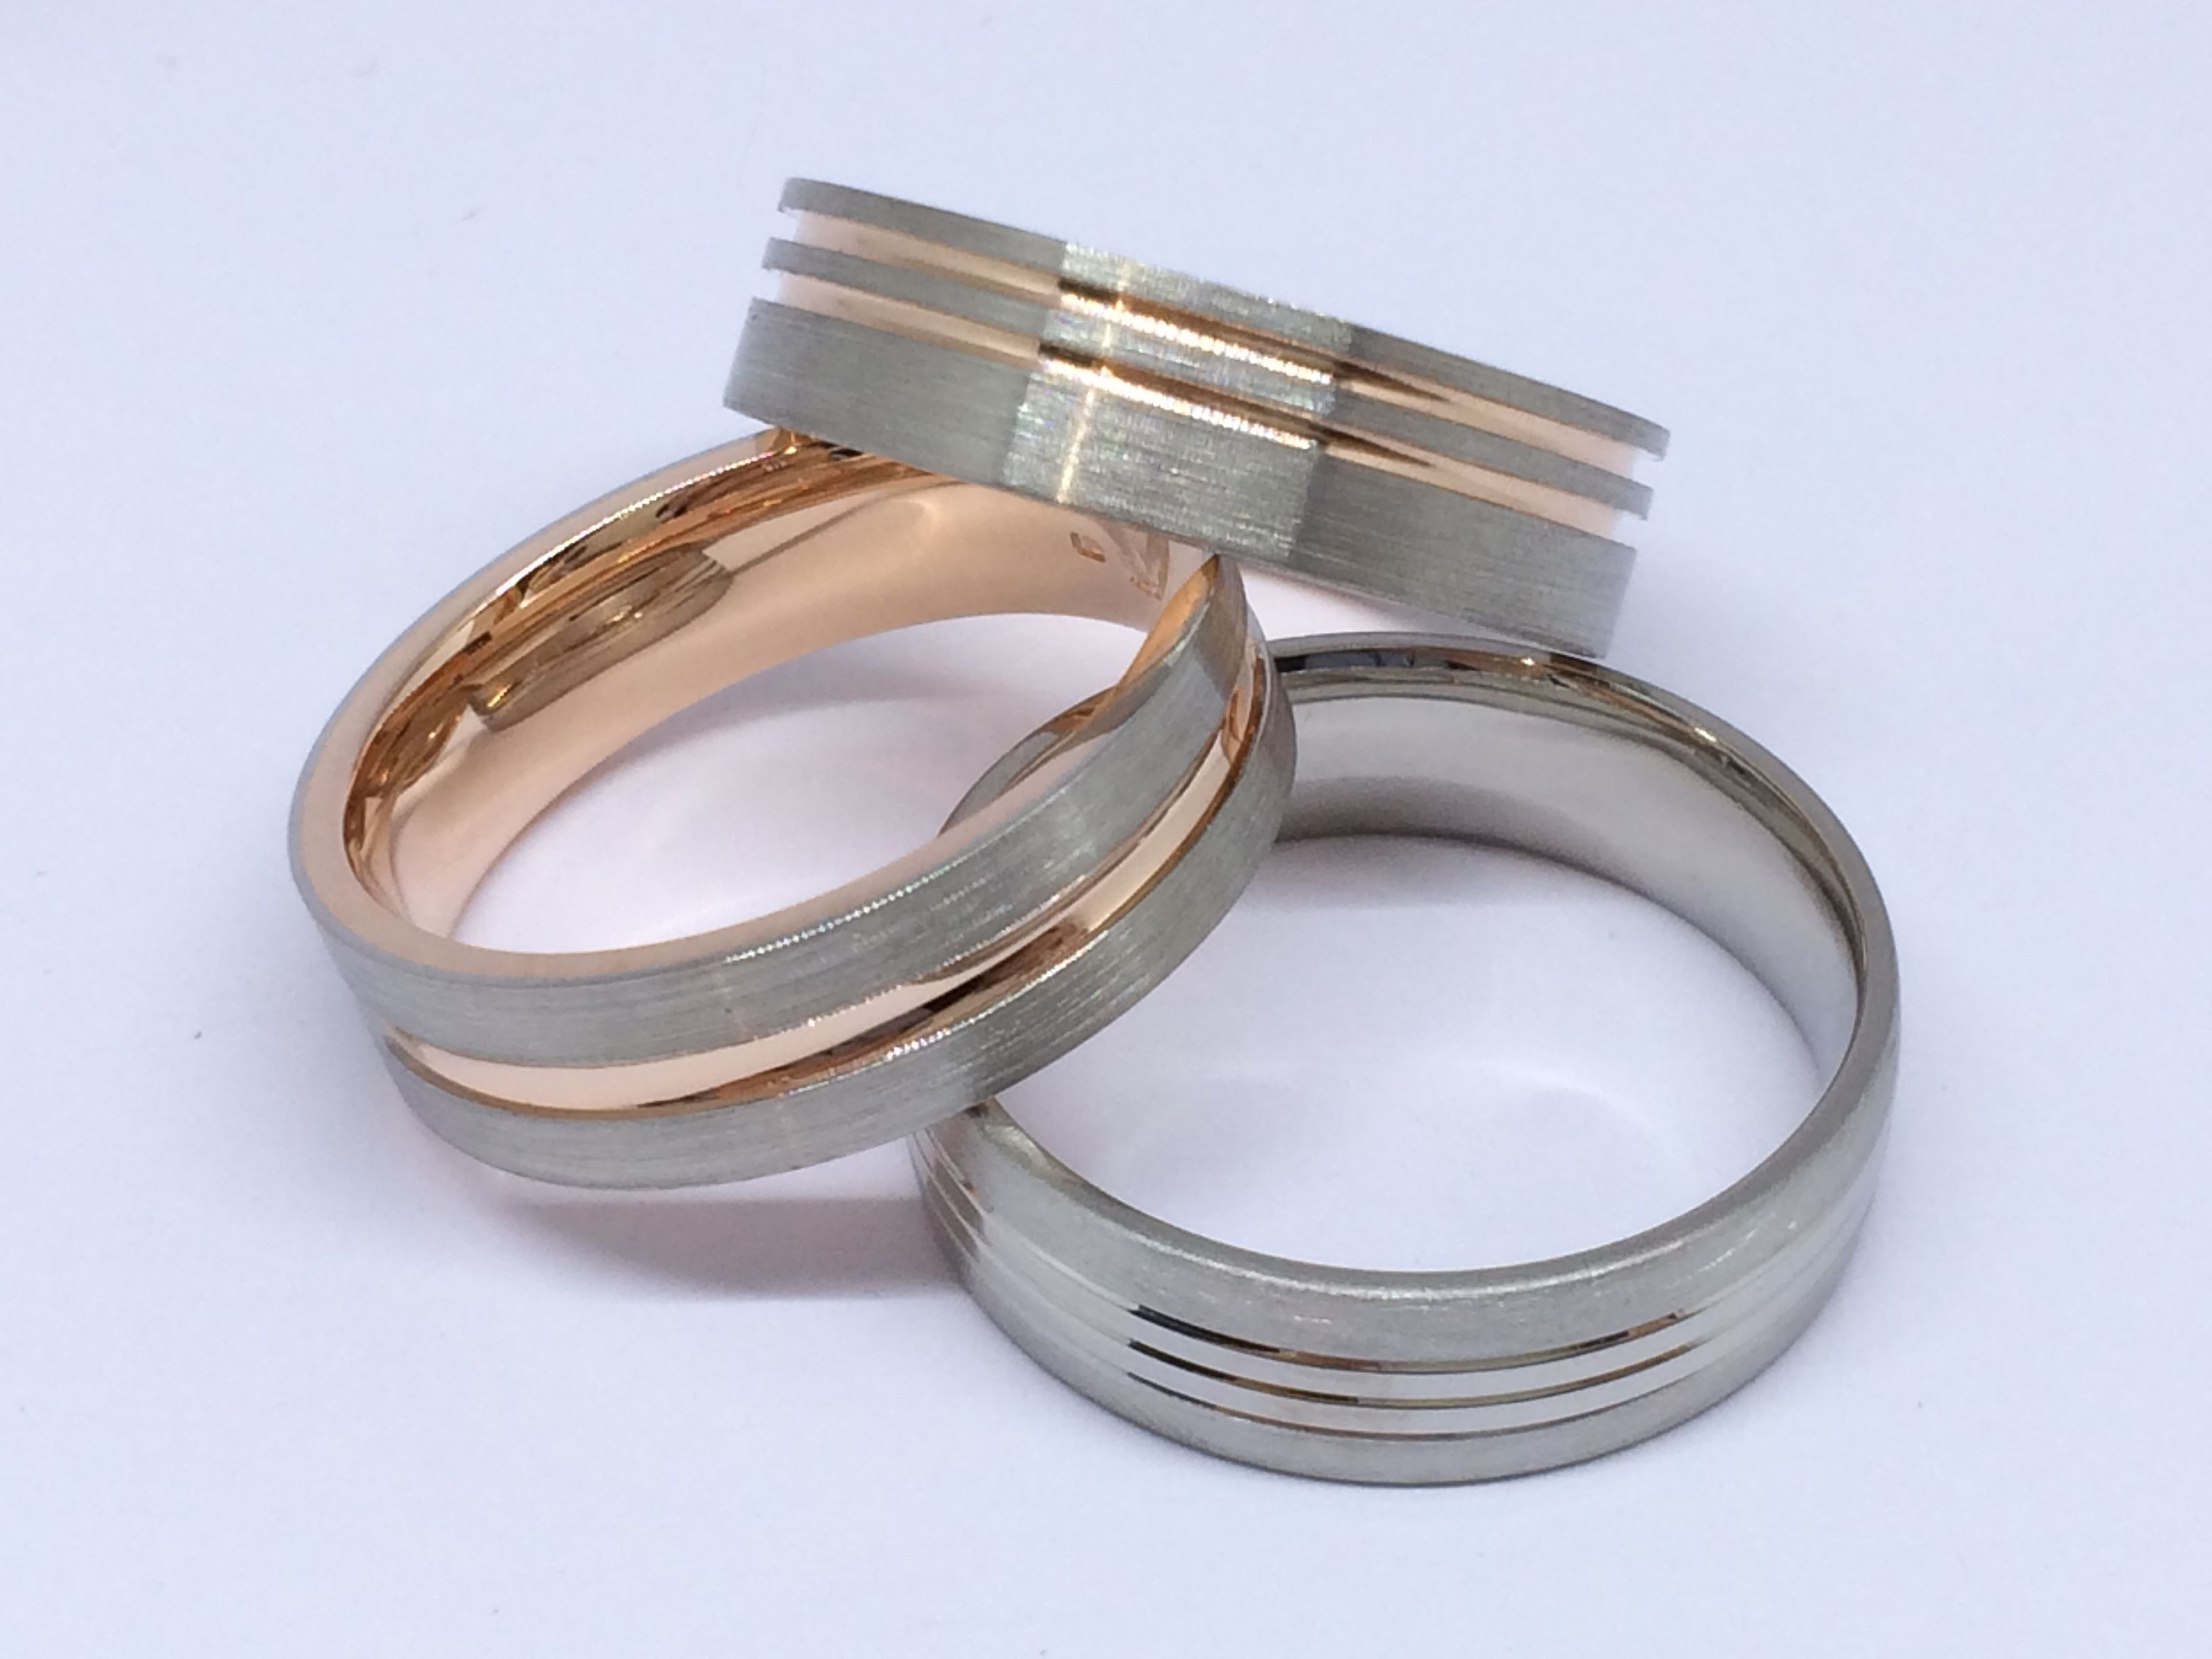 Palladium & Rose Gold Wedding Rings Palladium RoseGold Wedding